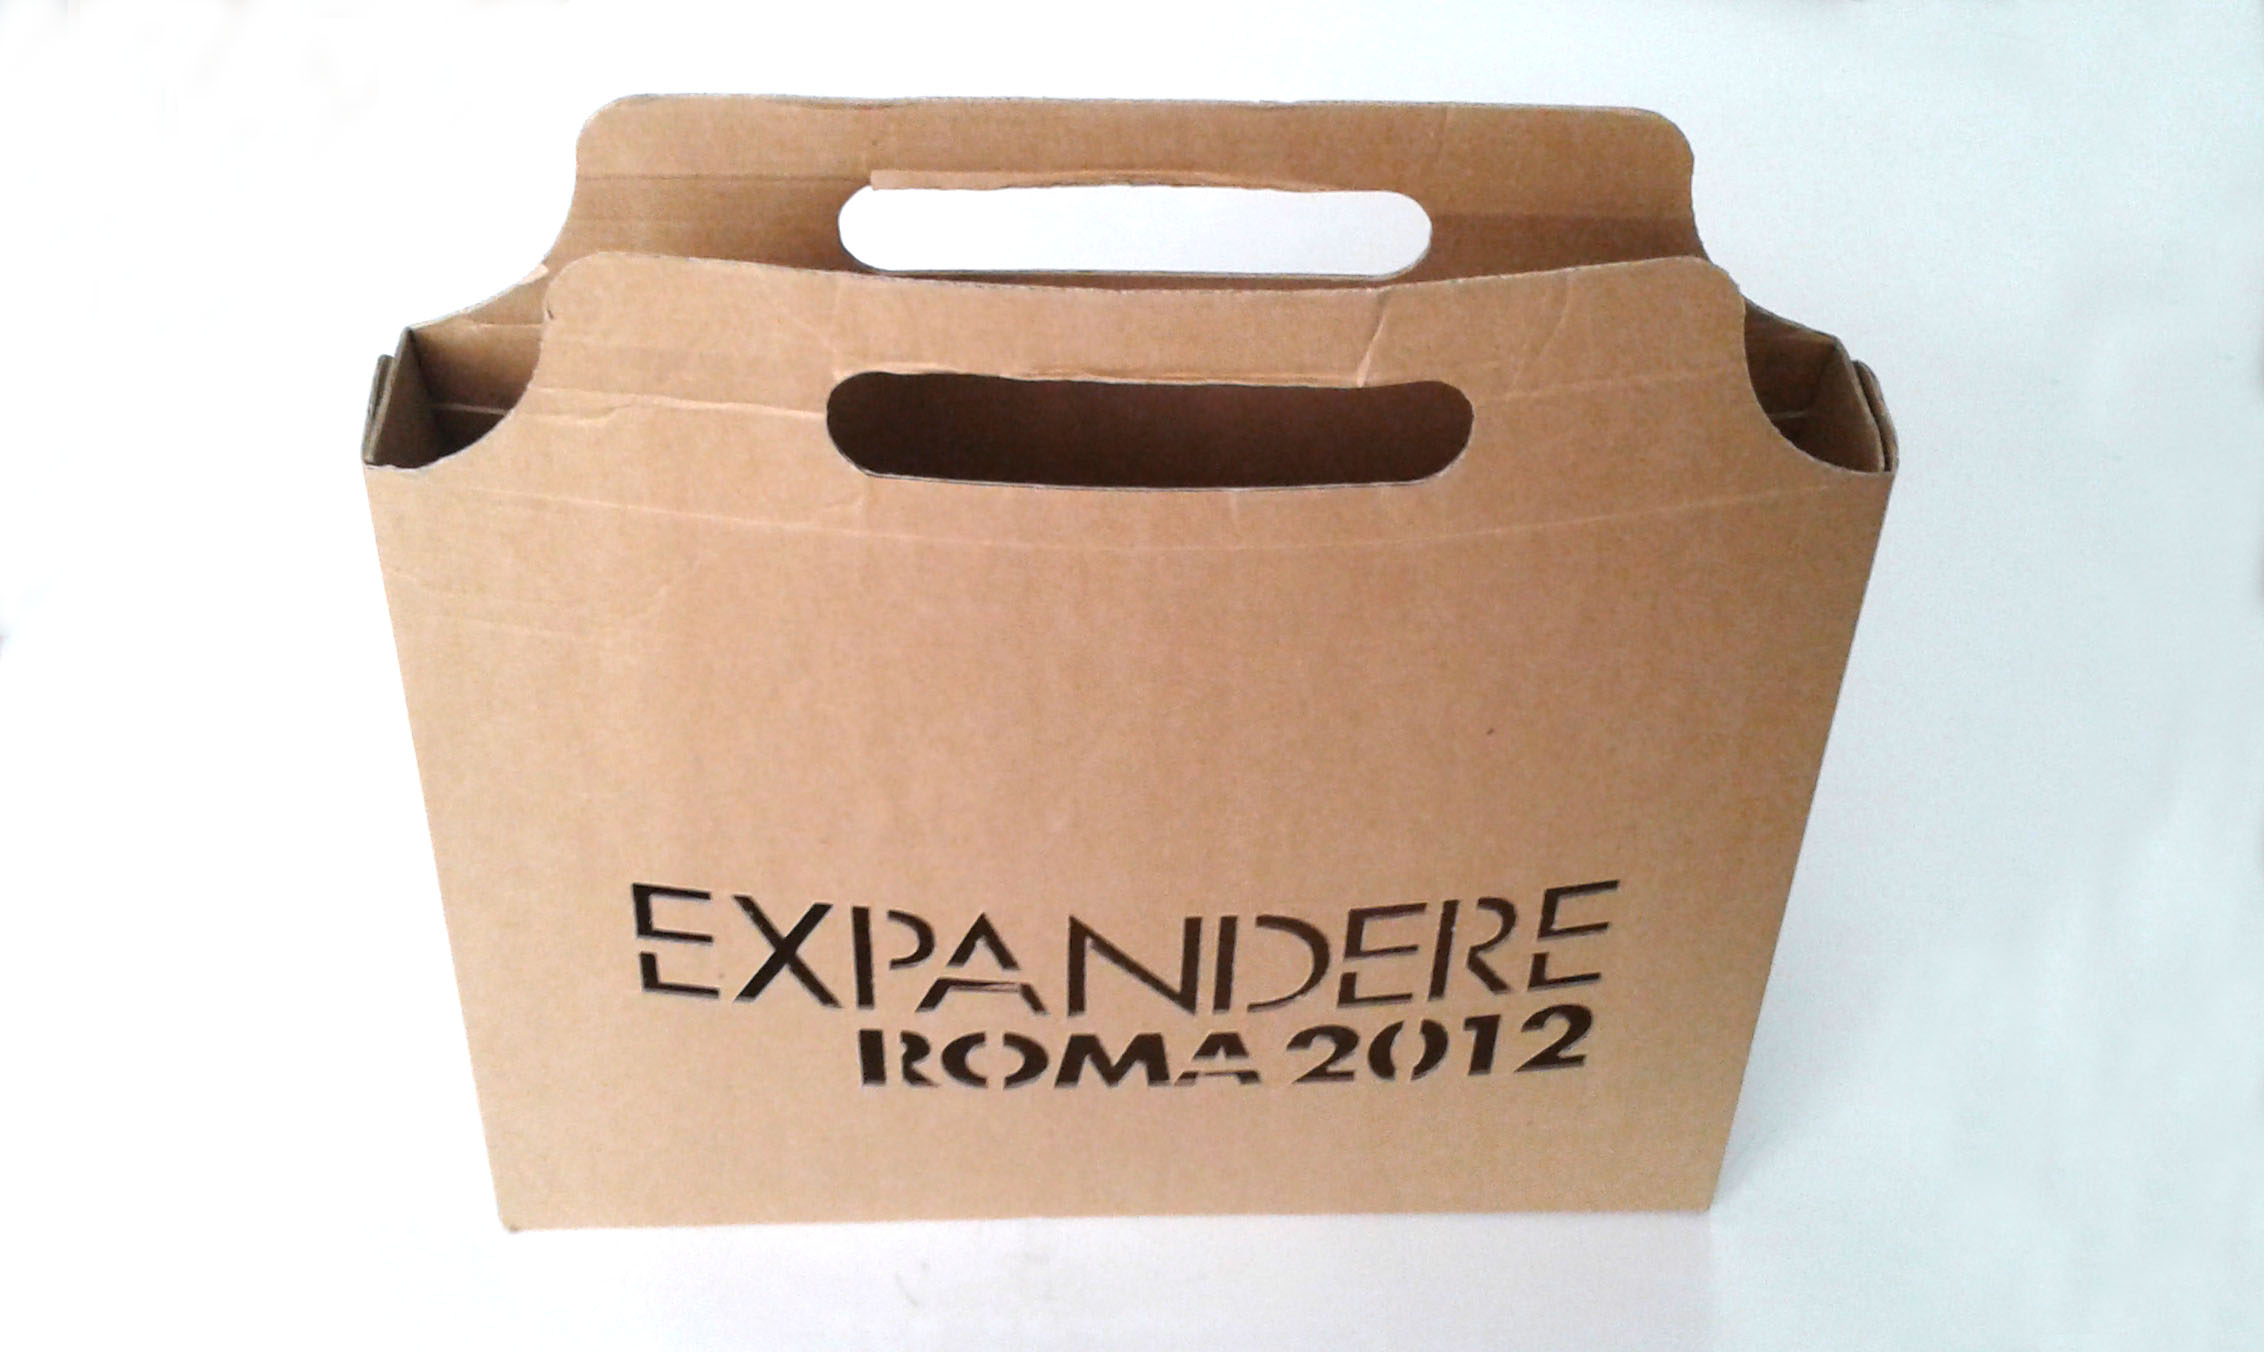 pack expandere 2012